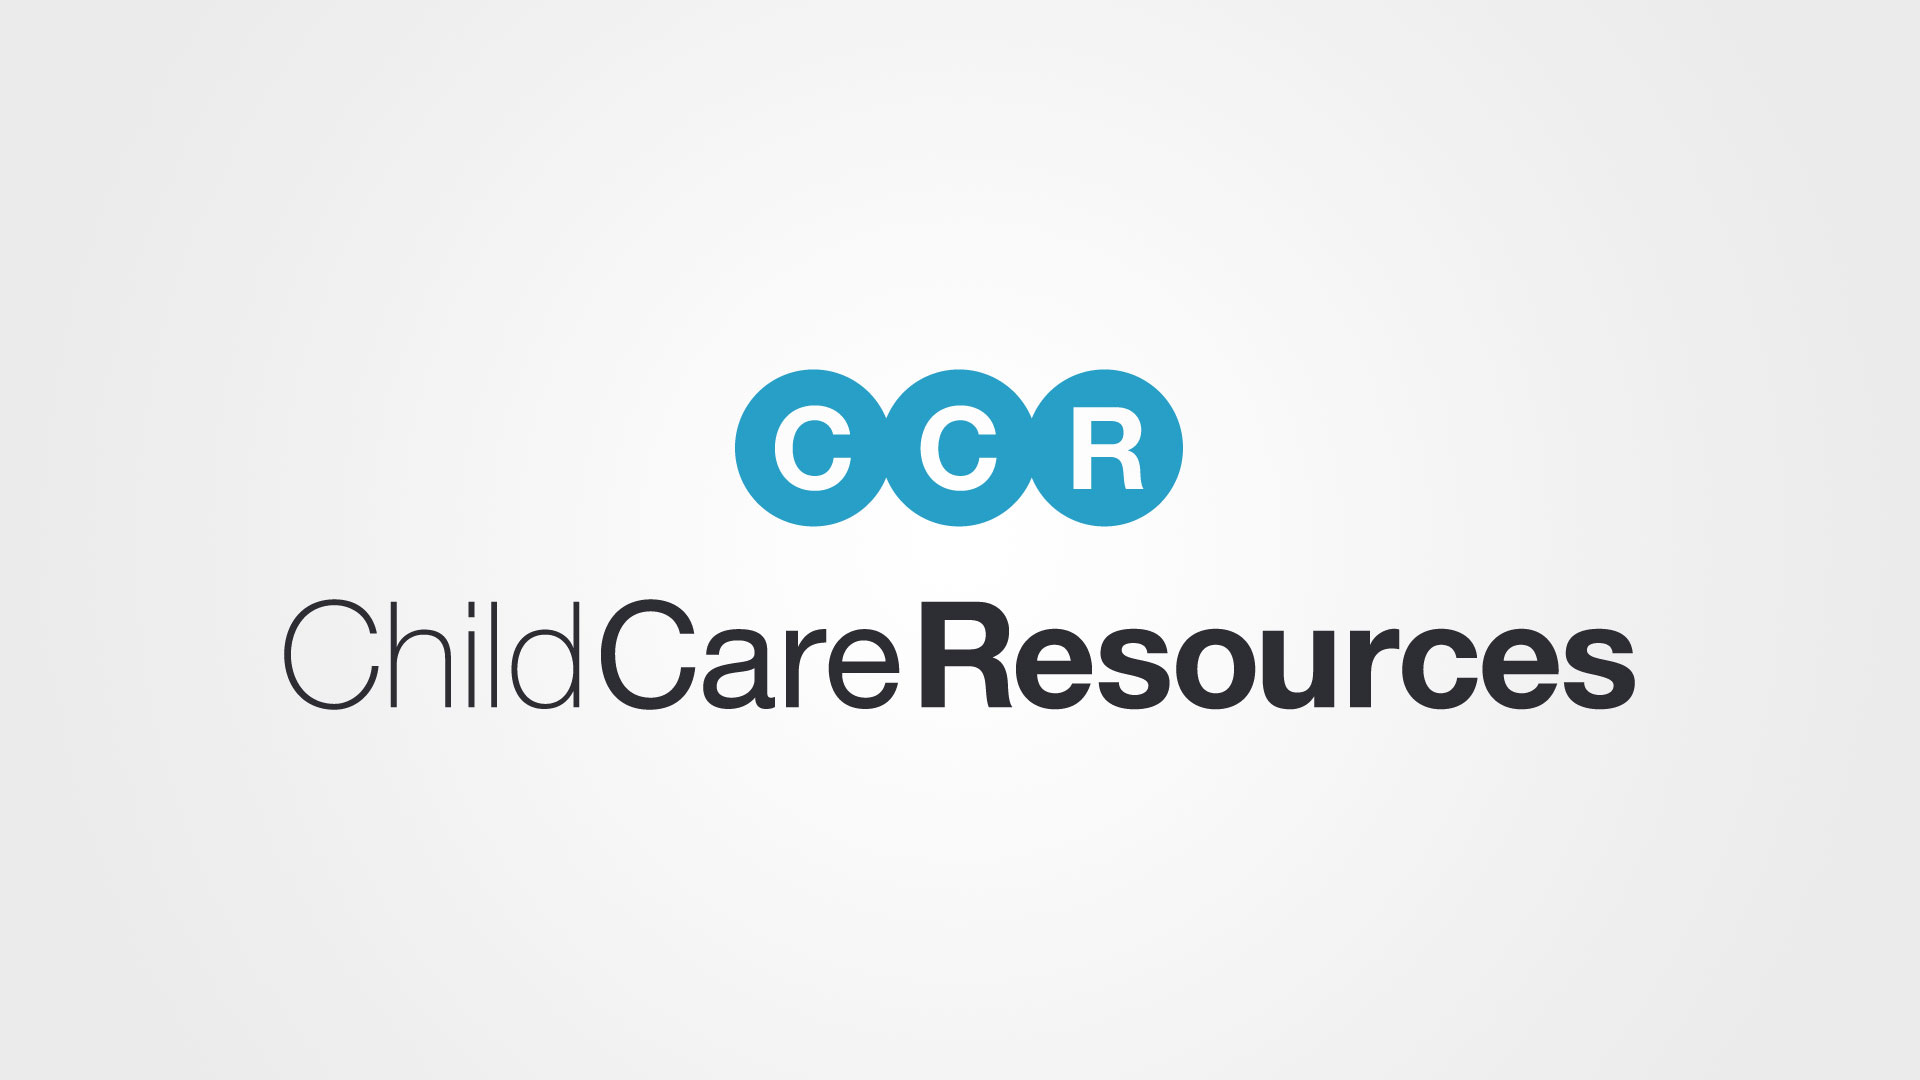 Child Care Resources